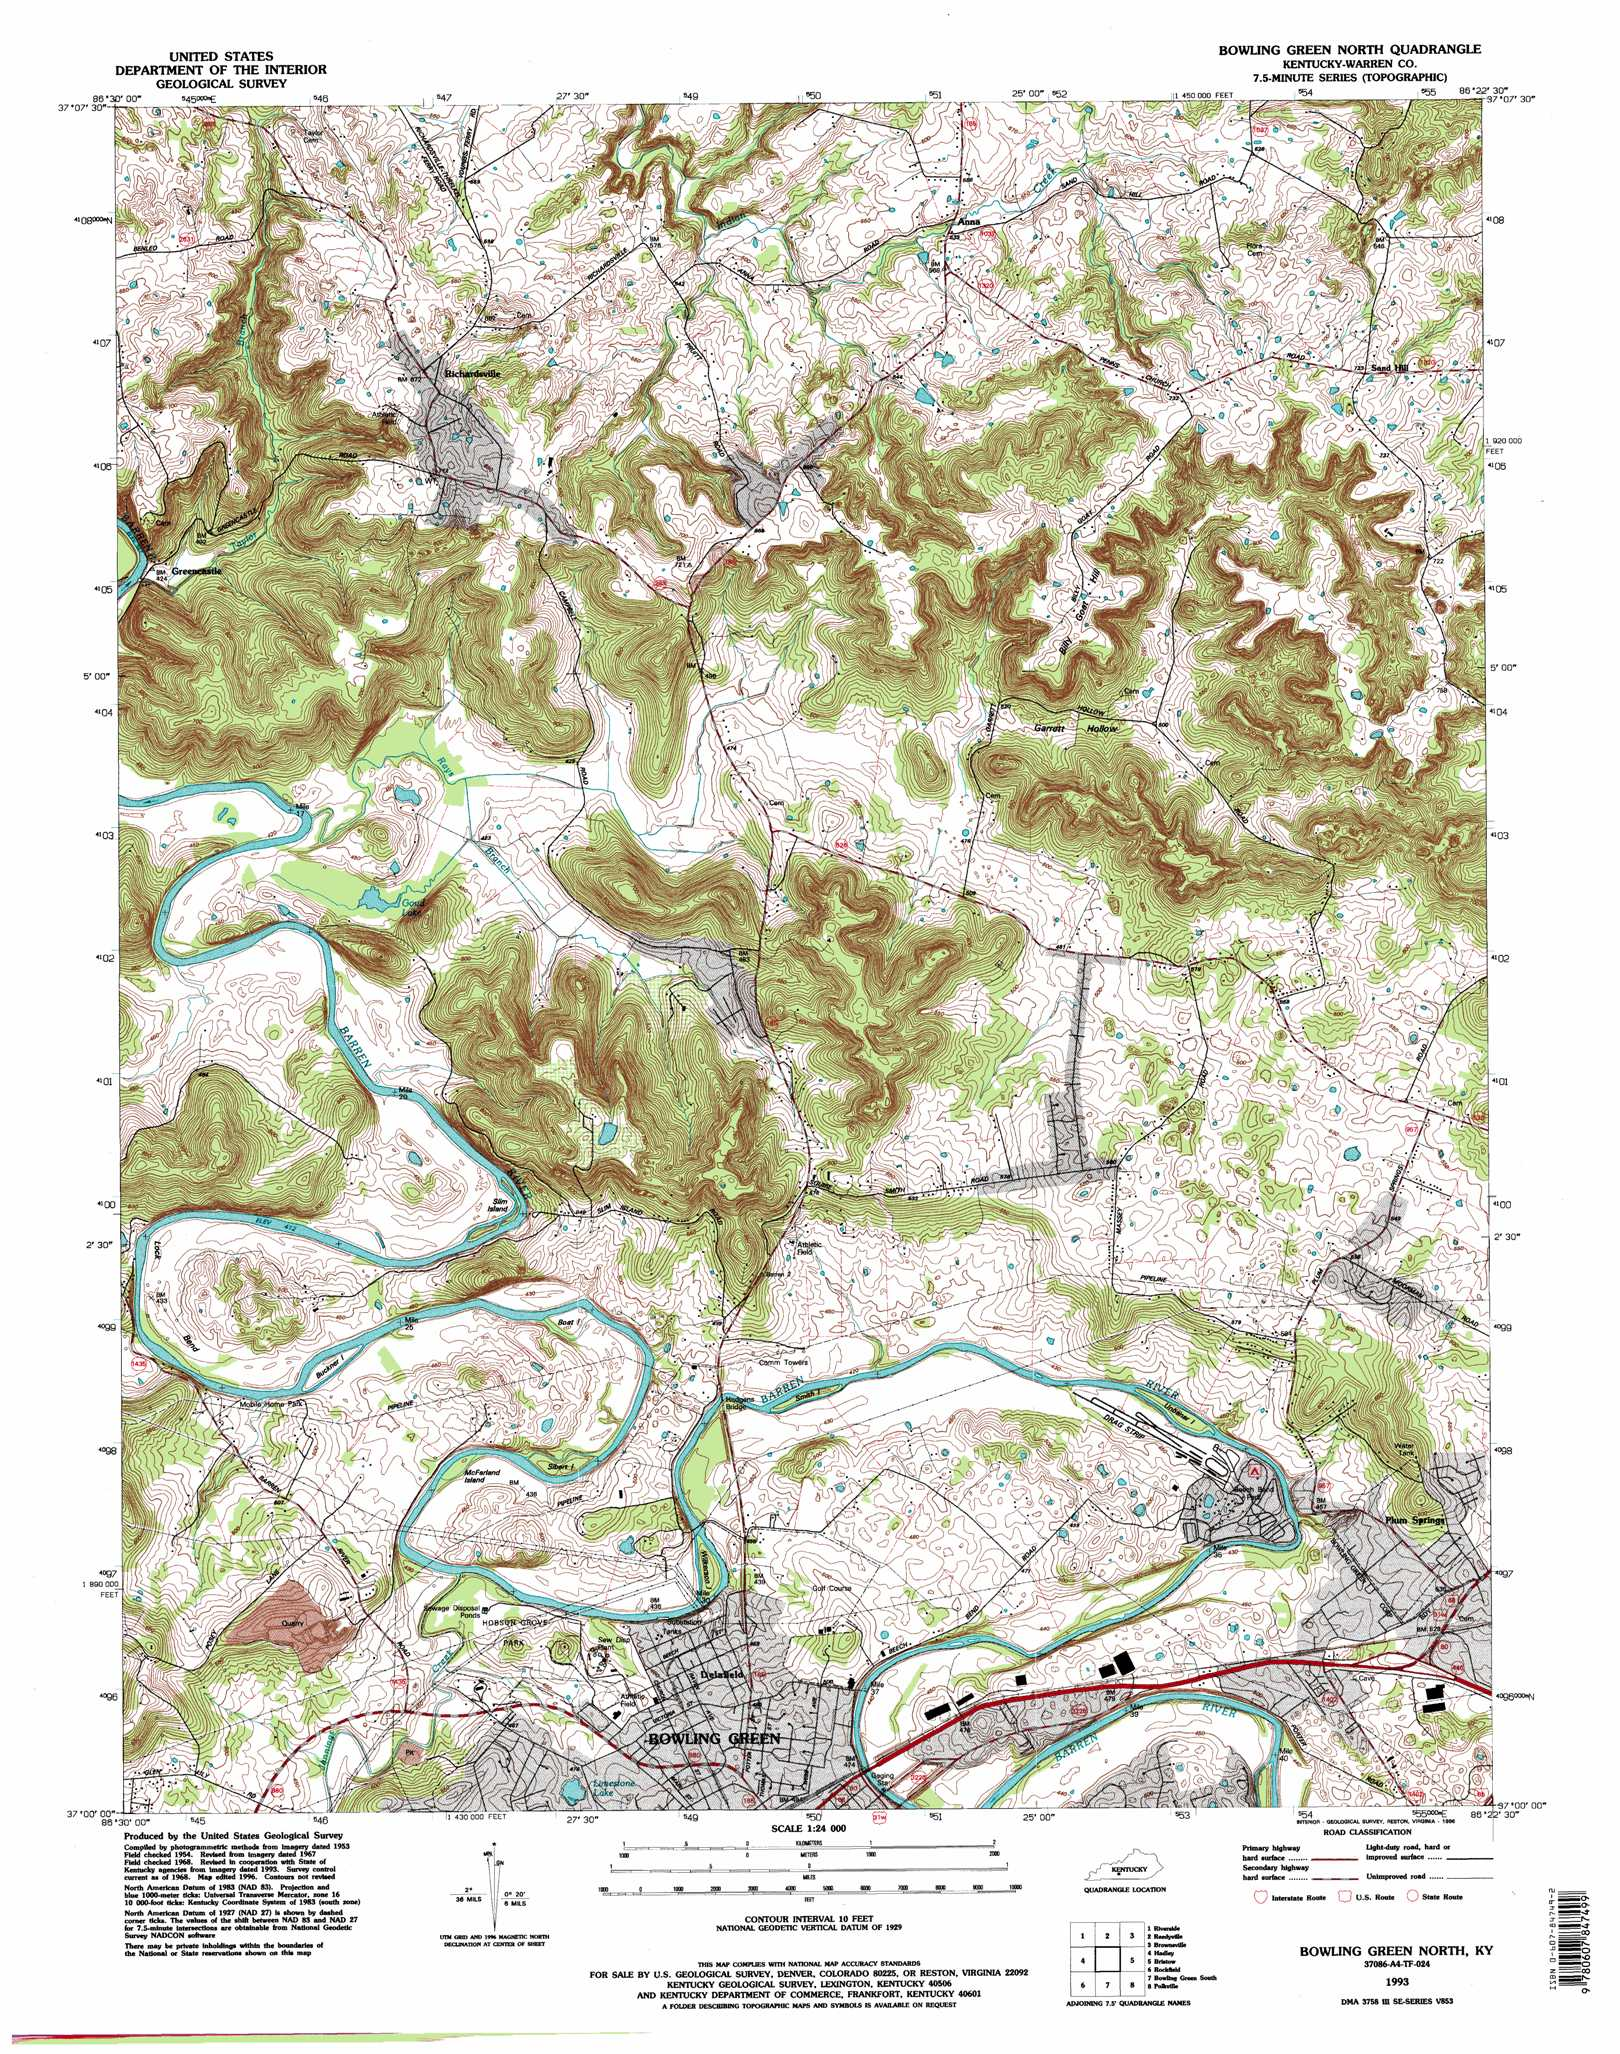 bowling green north. bowling green north topographic map ky  usgs topo quad a